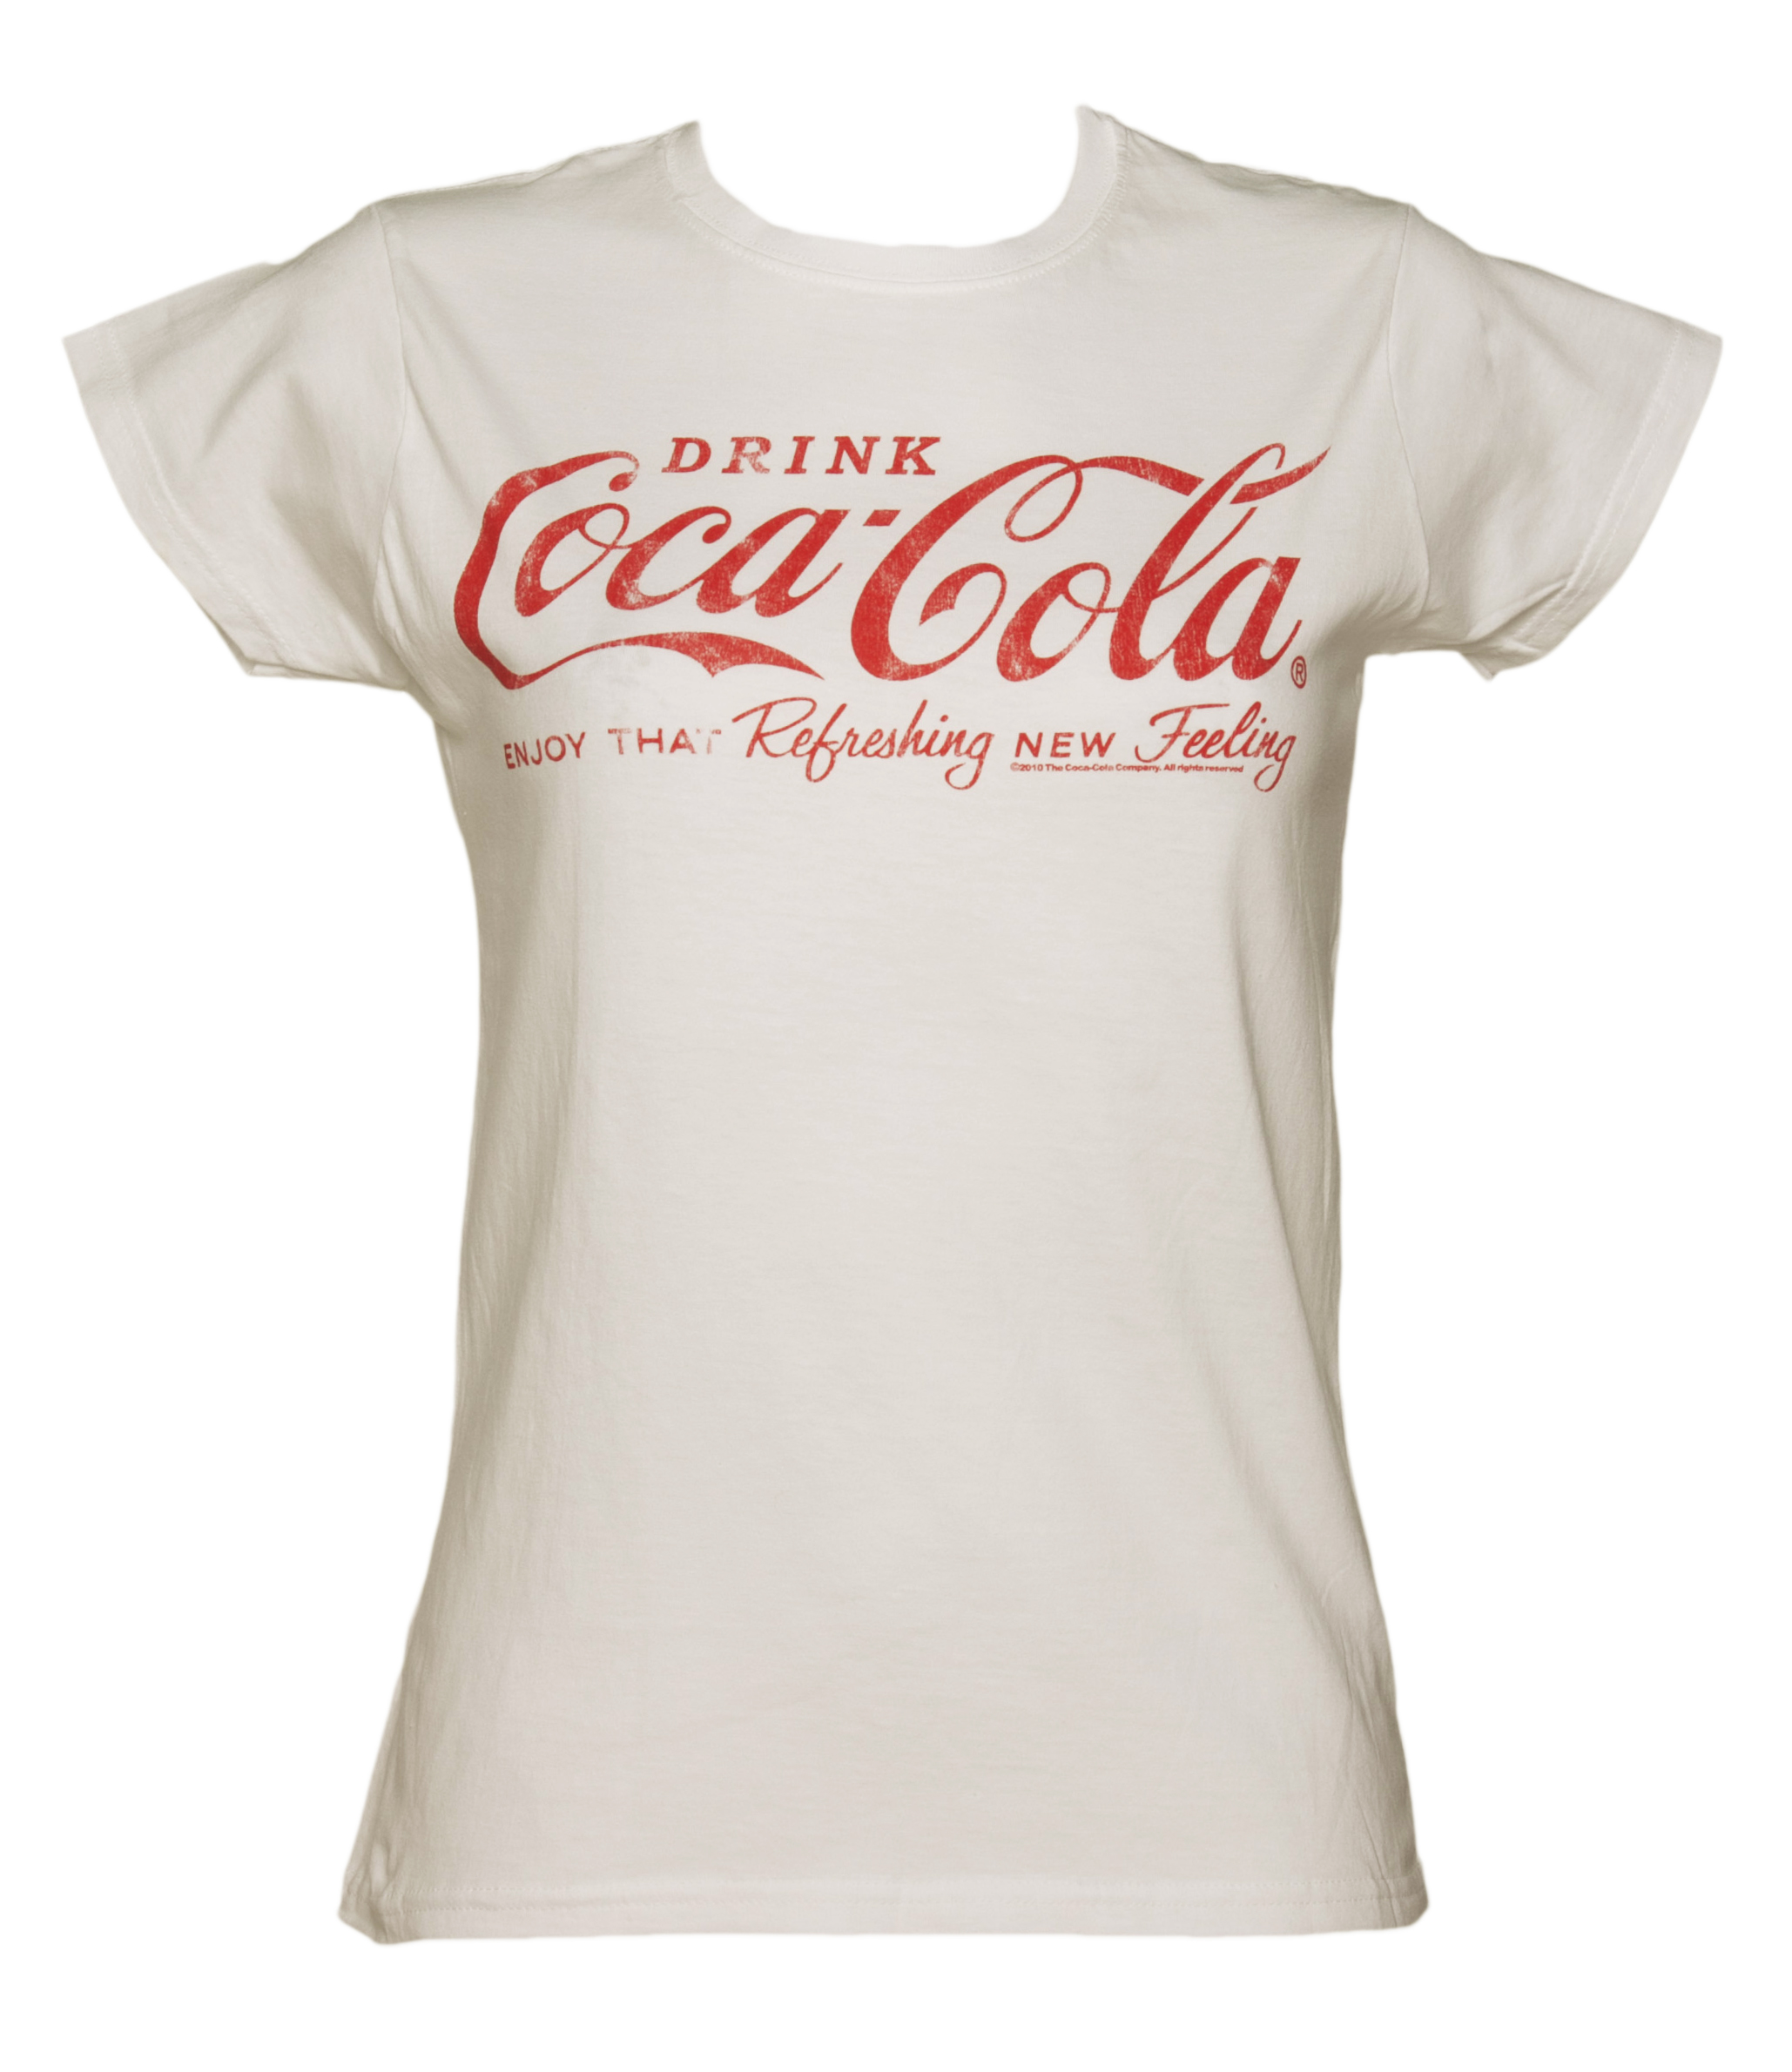 women 39 s white drink coca cola logo t shirt. Black Bedroom Furniture Sets. Home Design Ideas